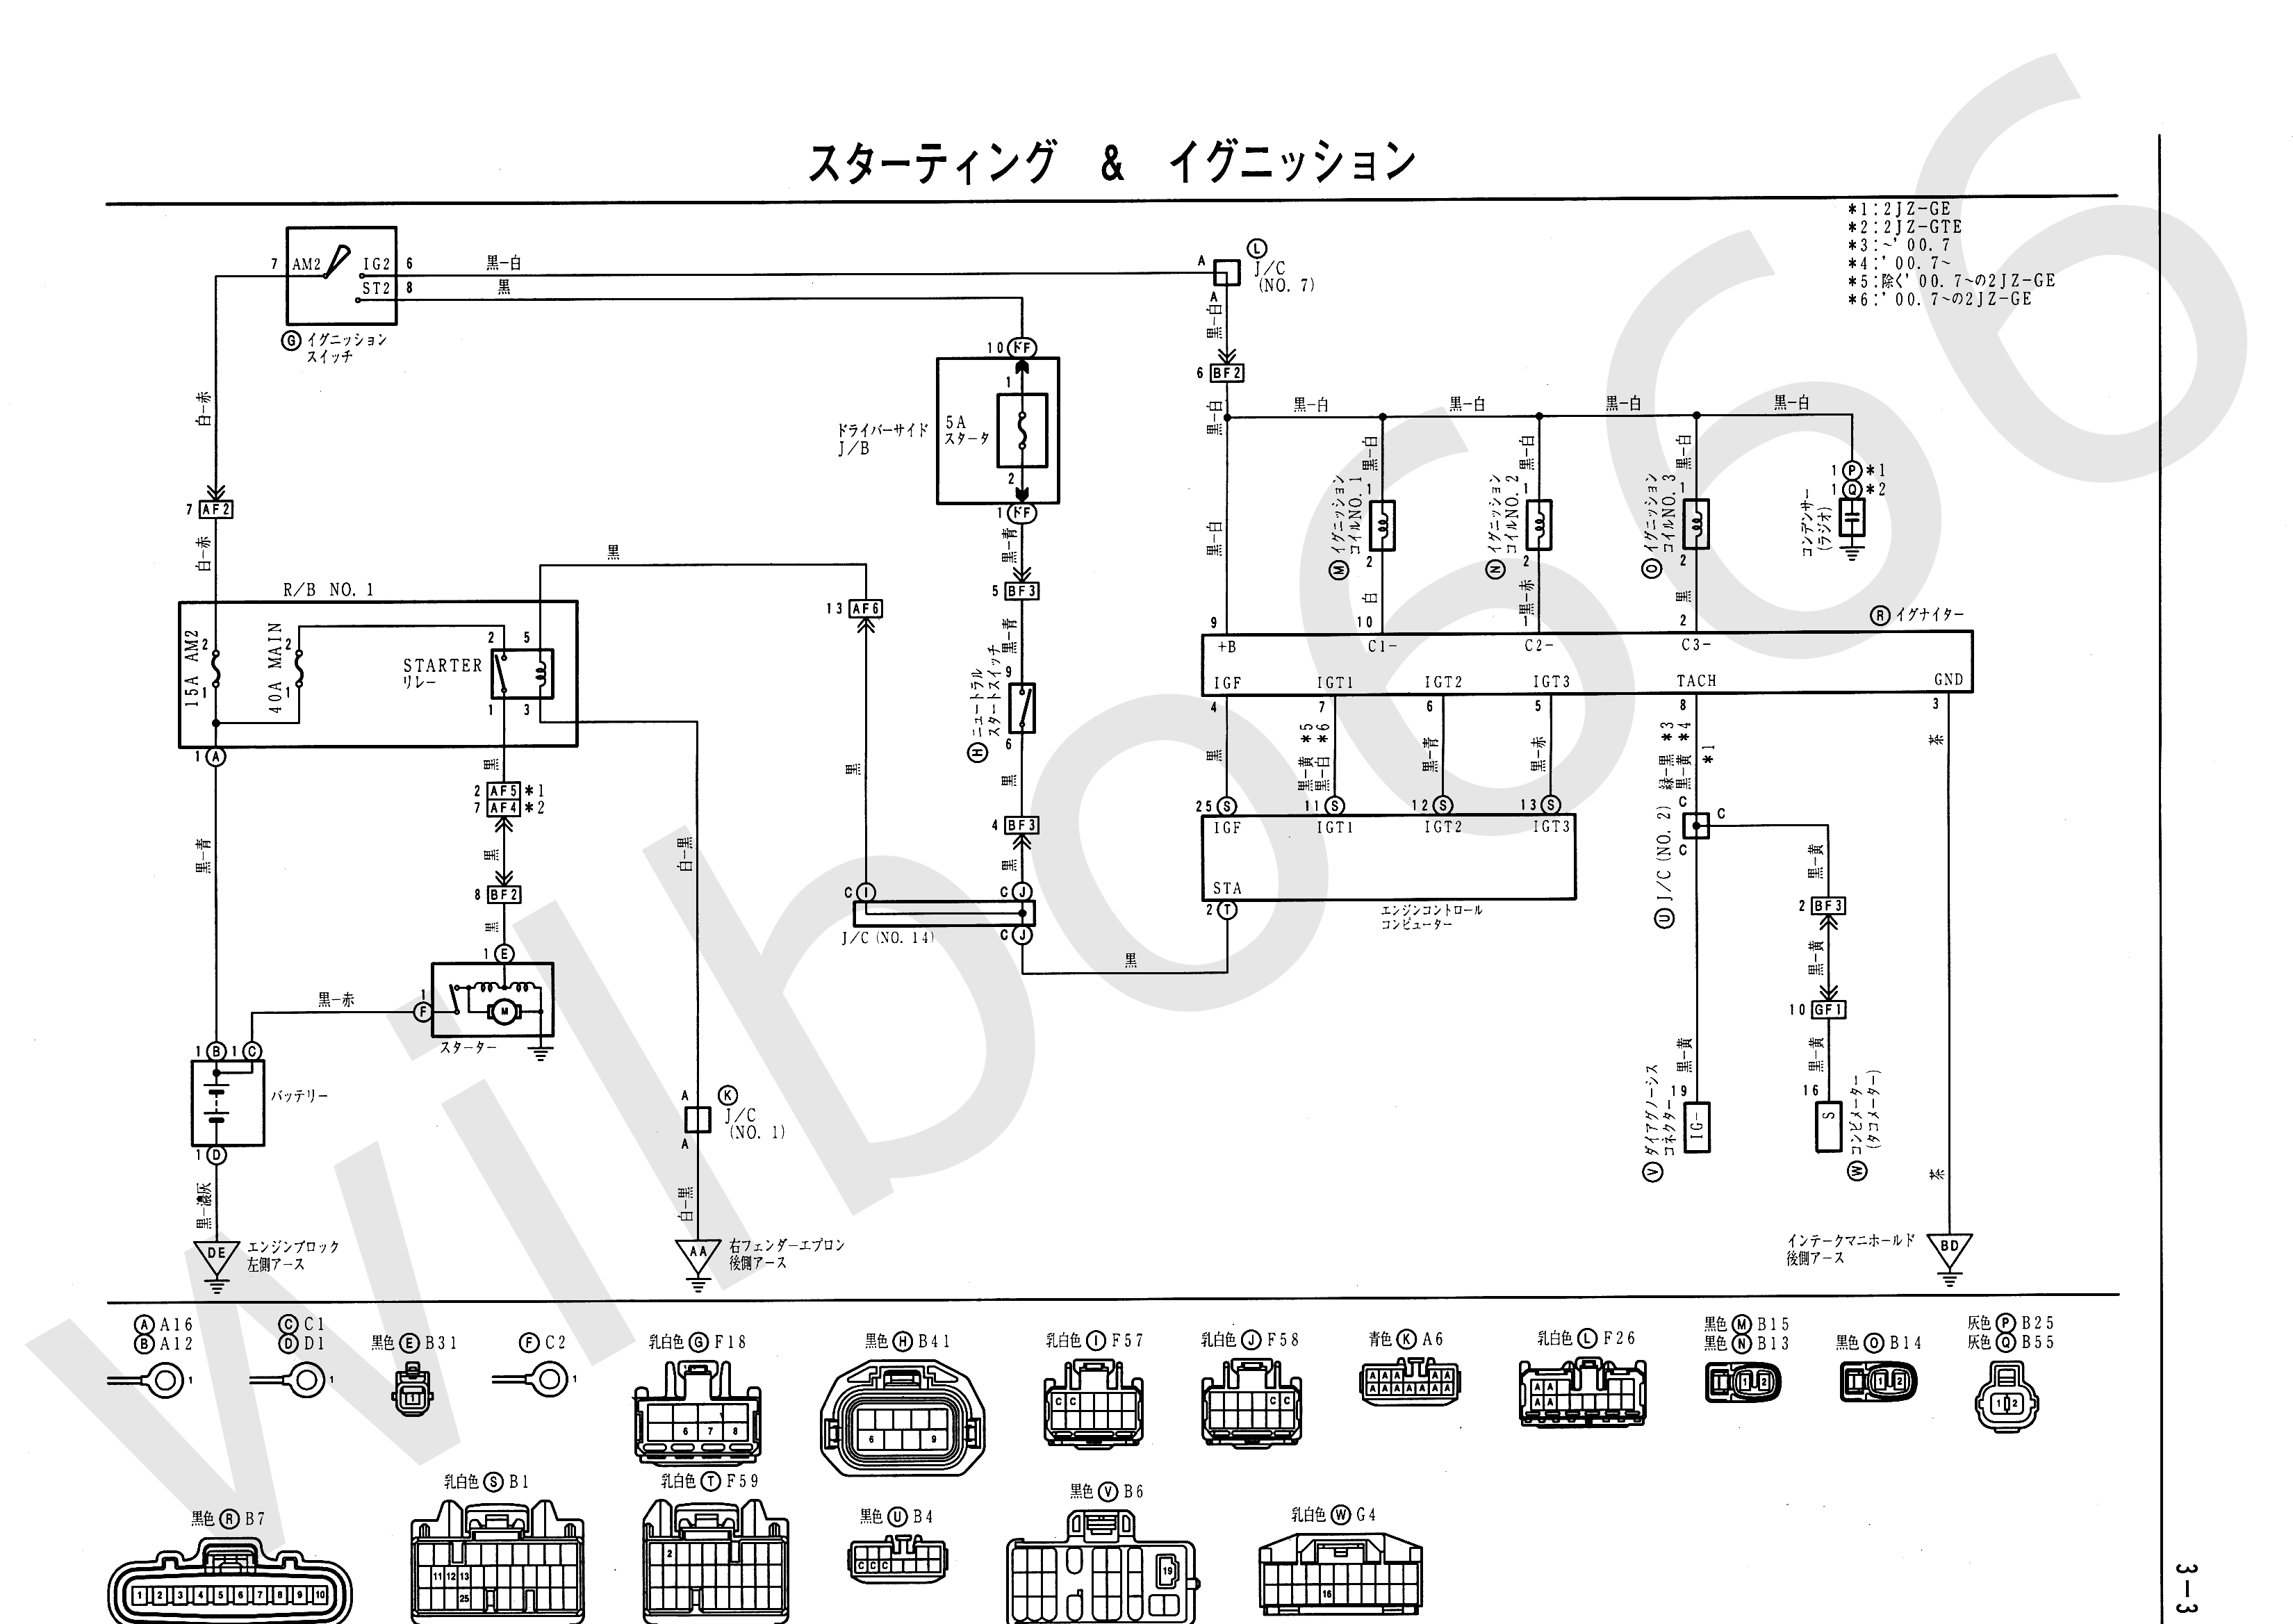 JZS161 Electrical Wiring Diagram 6748505 3 3 wilbo666 2jz gte vvti jzs161 aristo engine wiring  at webbmarketing.co